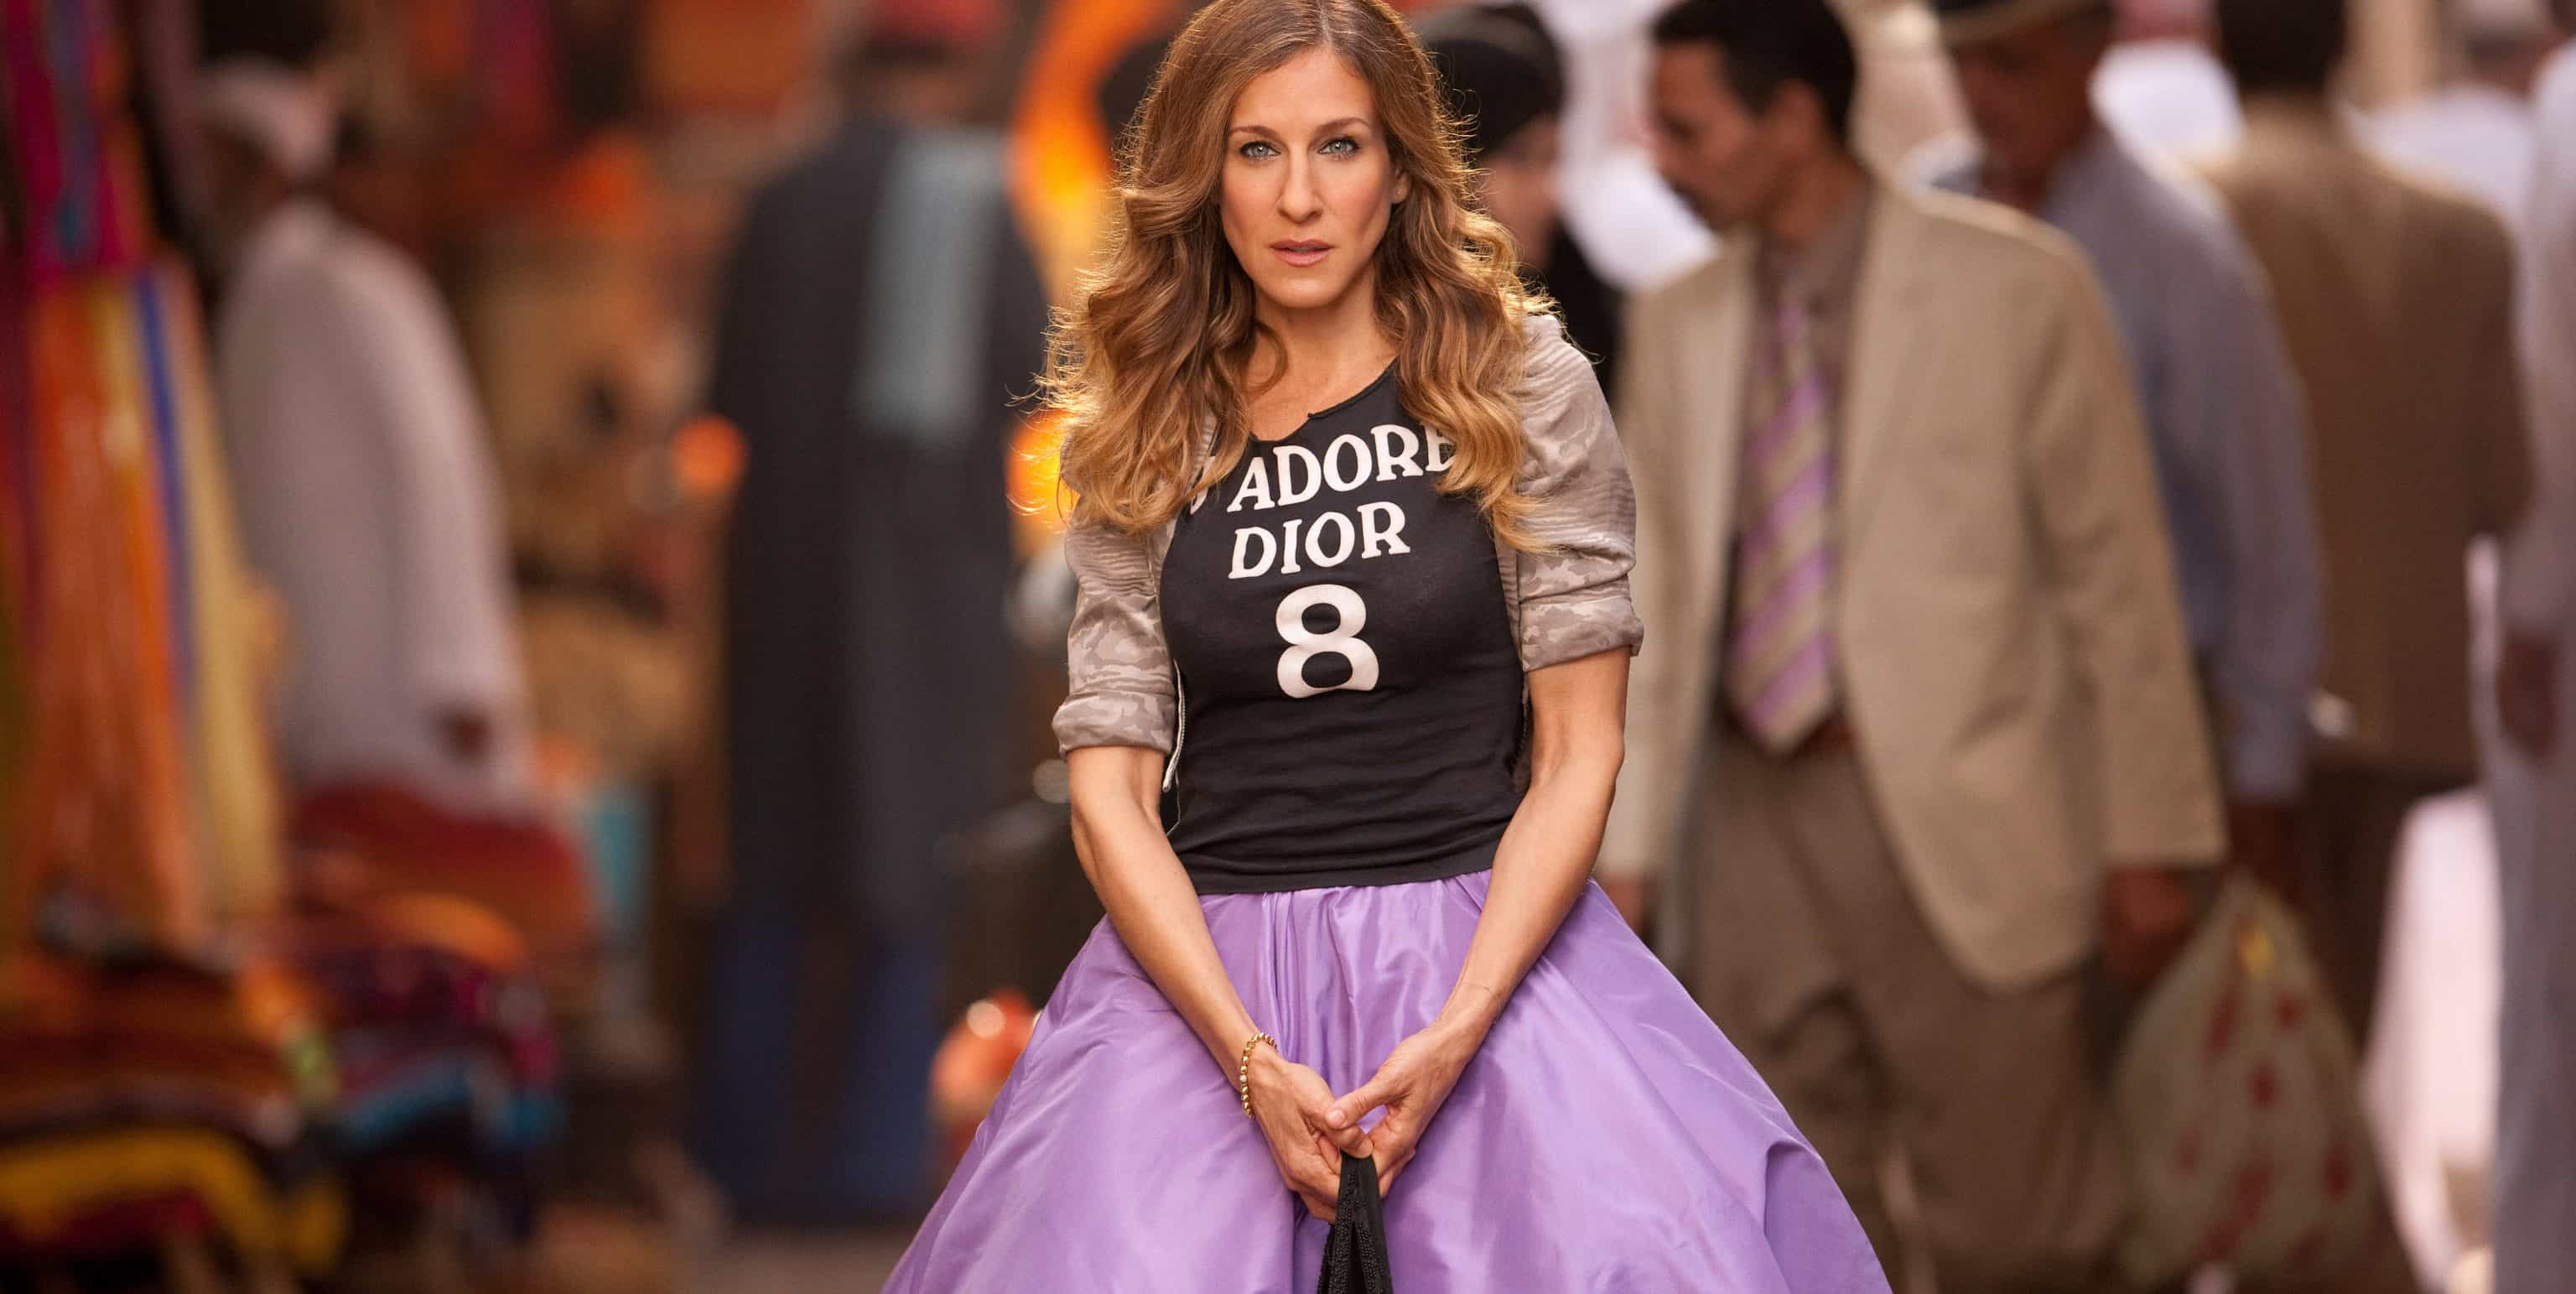 SARAH JESSICA PARKER as Carrie Bradshaw in New Line CinemaÕs comedy ÒSEX AND THE CITY 2,Ó a Warner Bros. Pictures release.